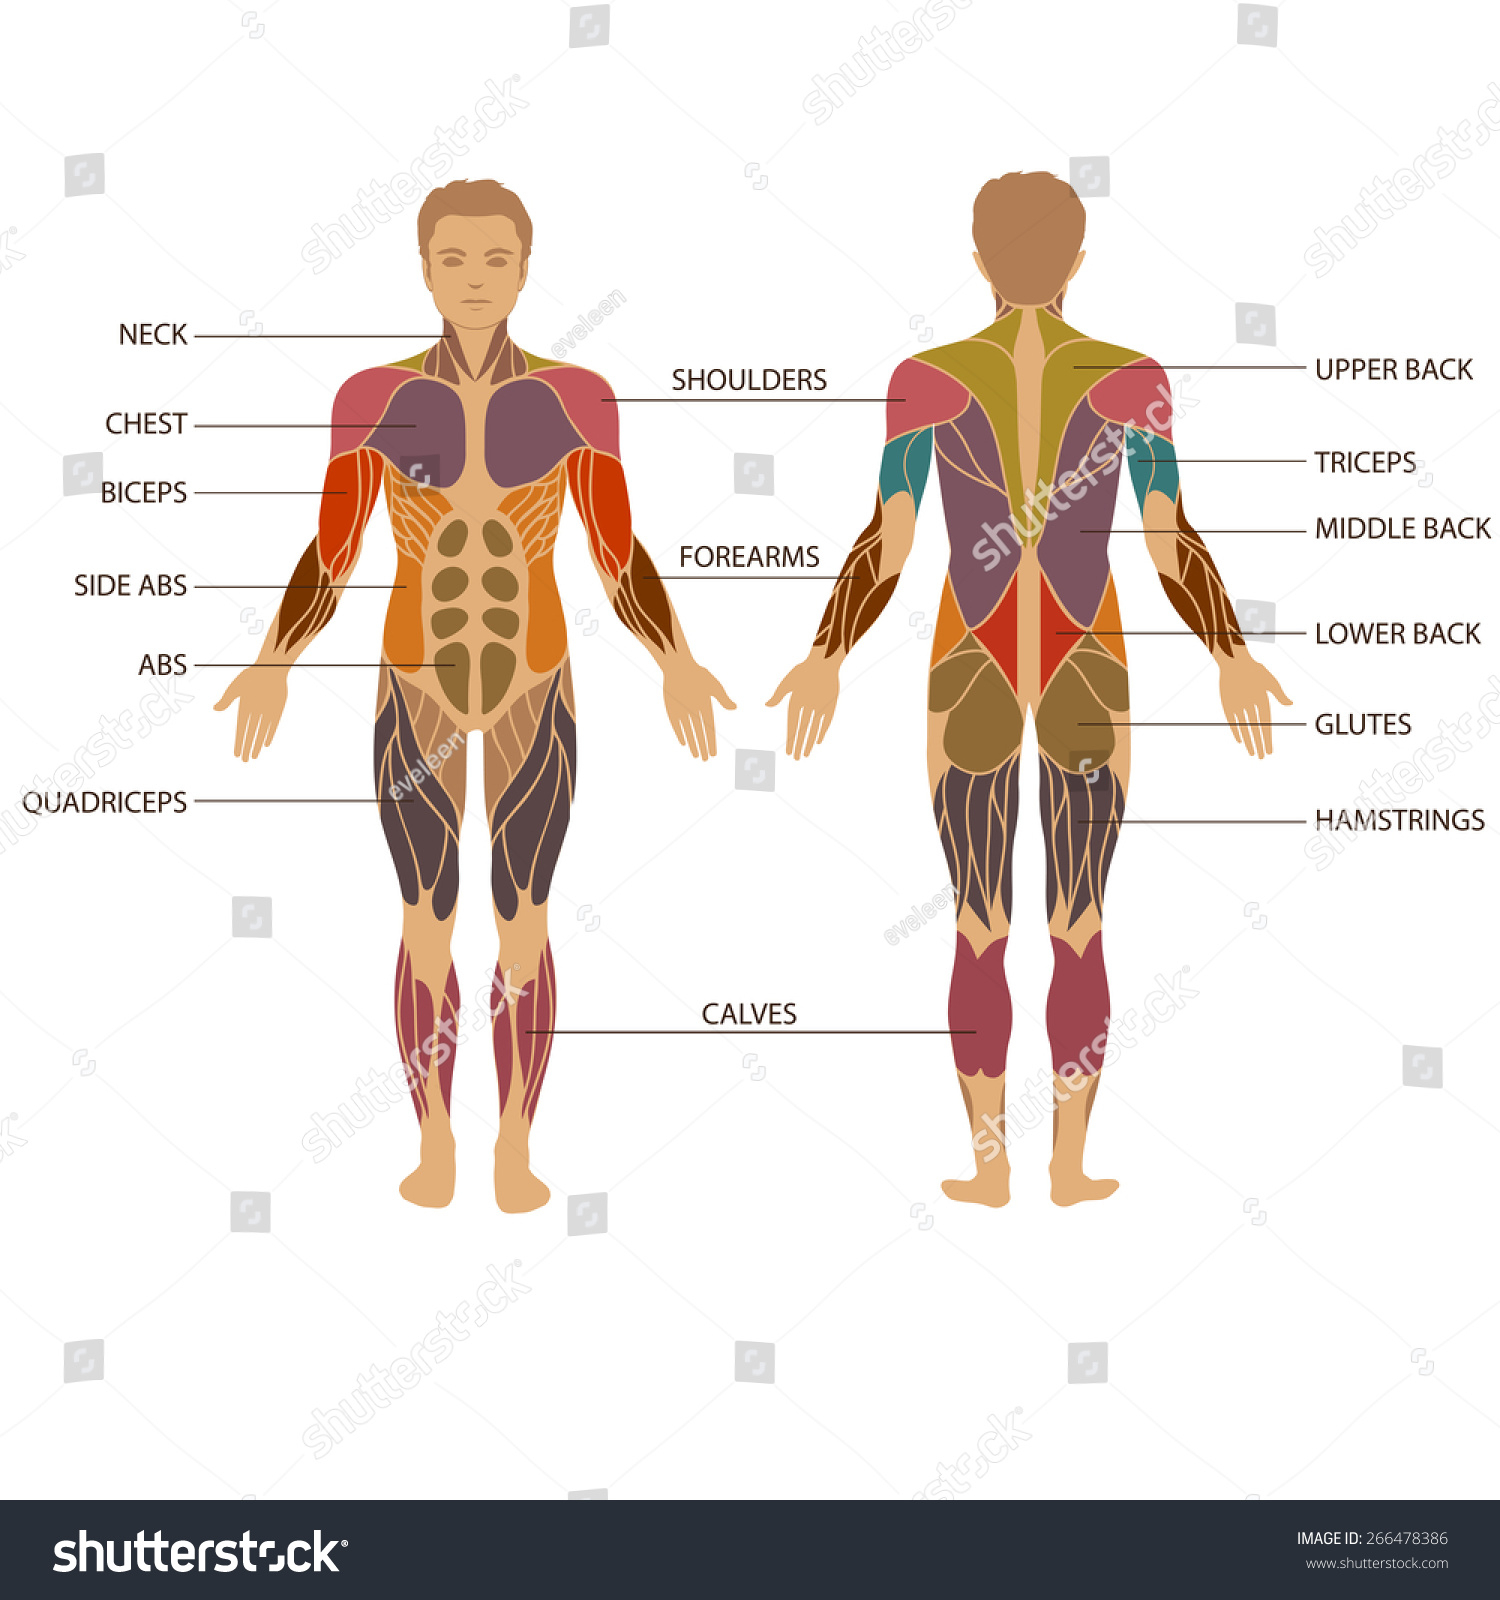 1500x1600 Muscle Image In Human Body Vector Muscular Human Body Muscle Man